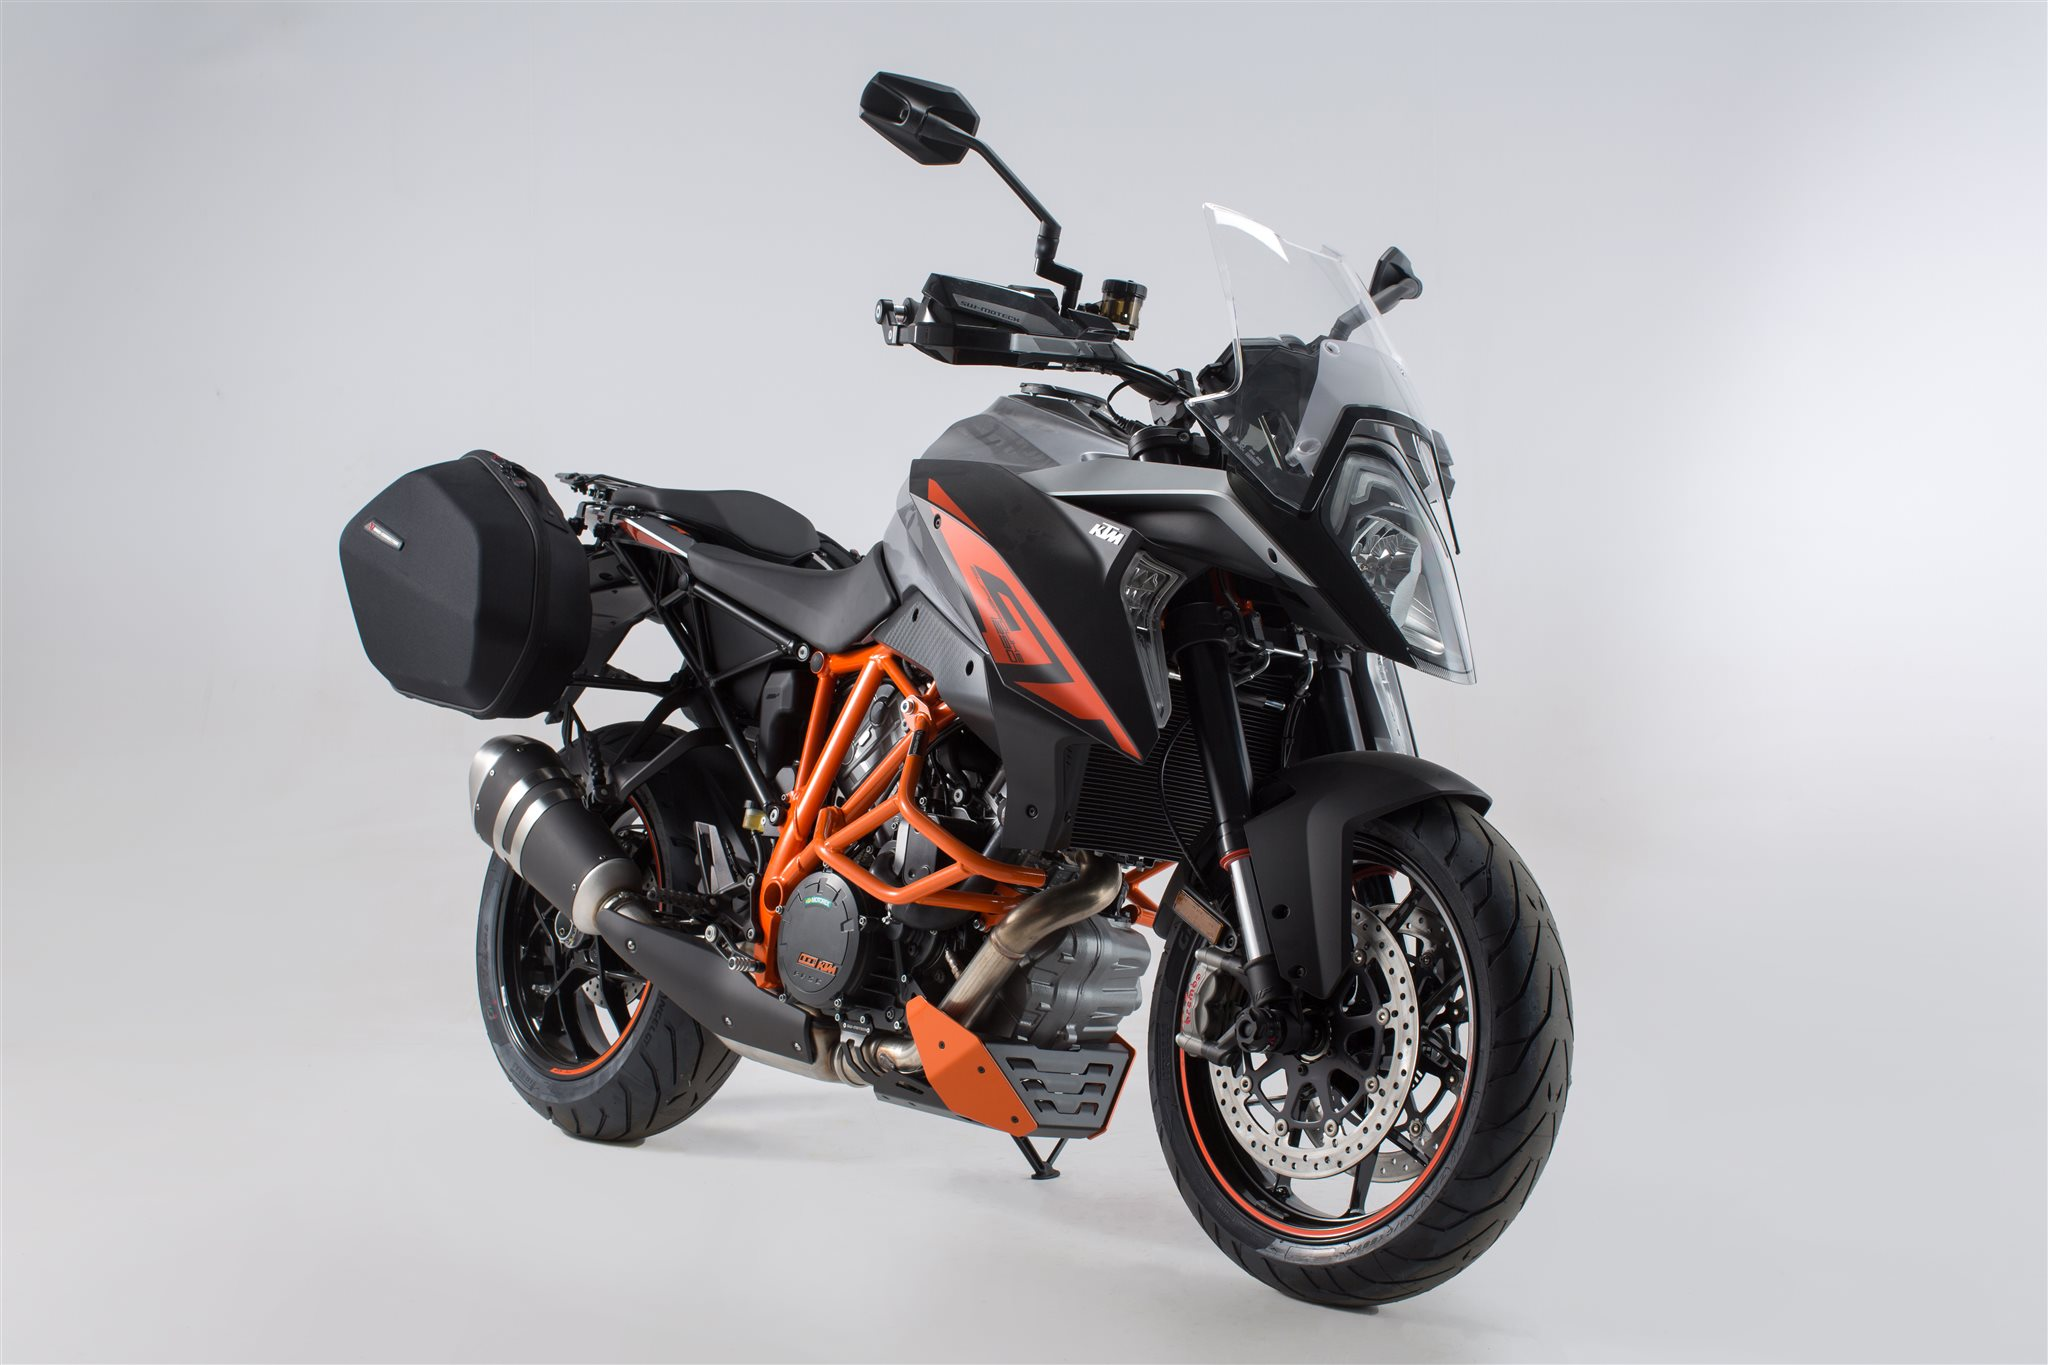 neues sw motech zubeh r f r die ktm 1290 super duke gt motorrad news. Black Bedroom Furniture Sets. Home Design Ideas